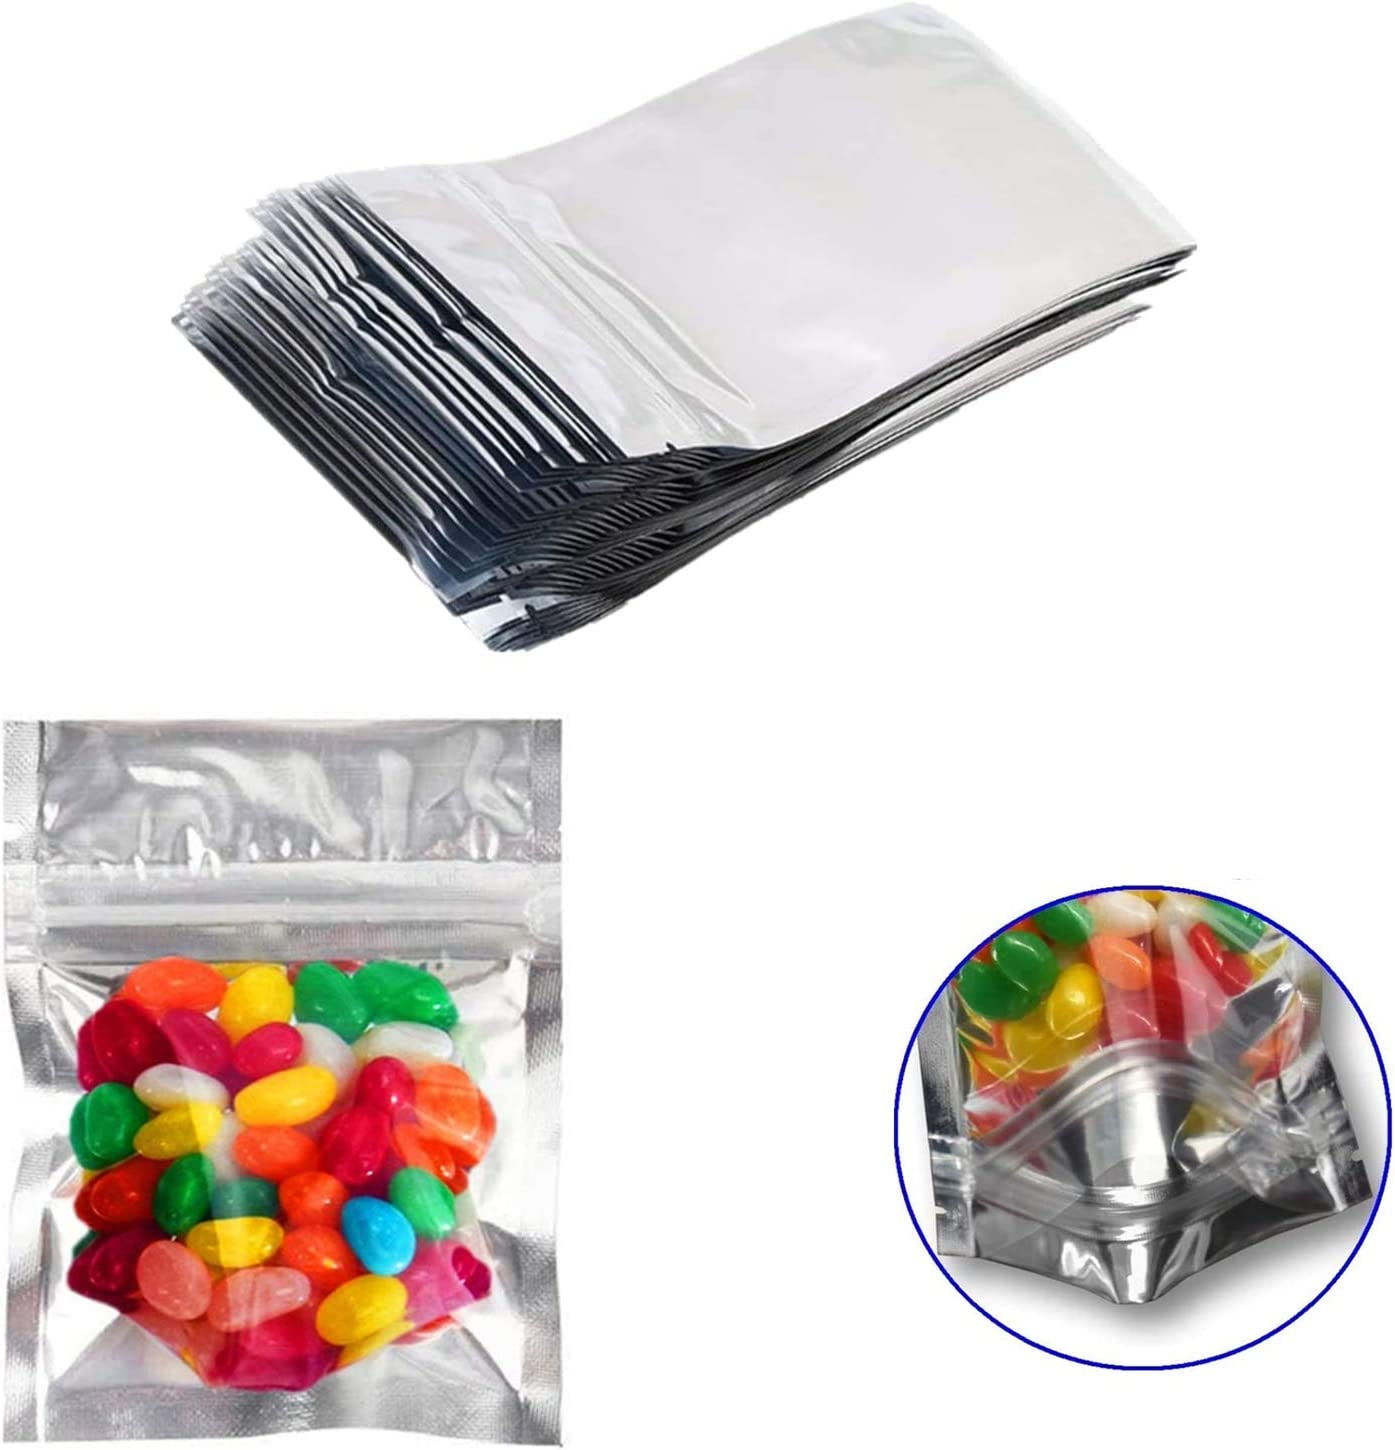 100 Pack Smell Proof Mylar Bags Foil Pouch Resealable Zip Lock 4 x 6 Inches